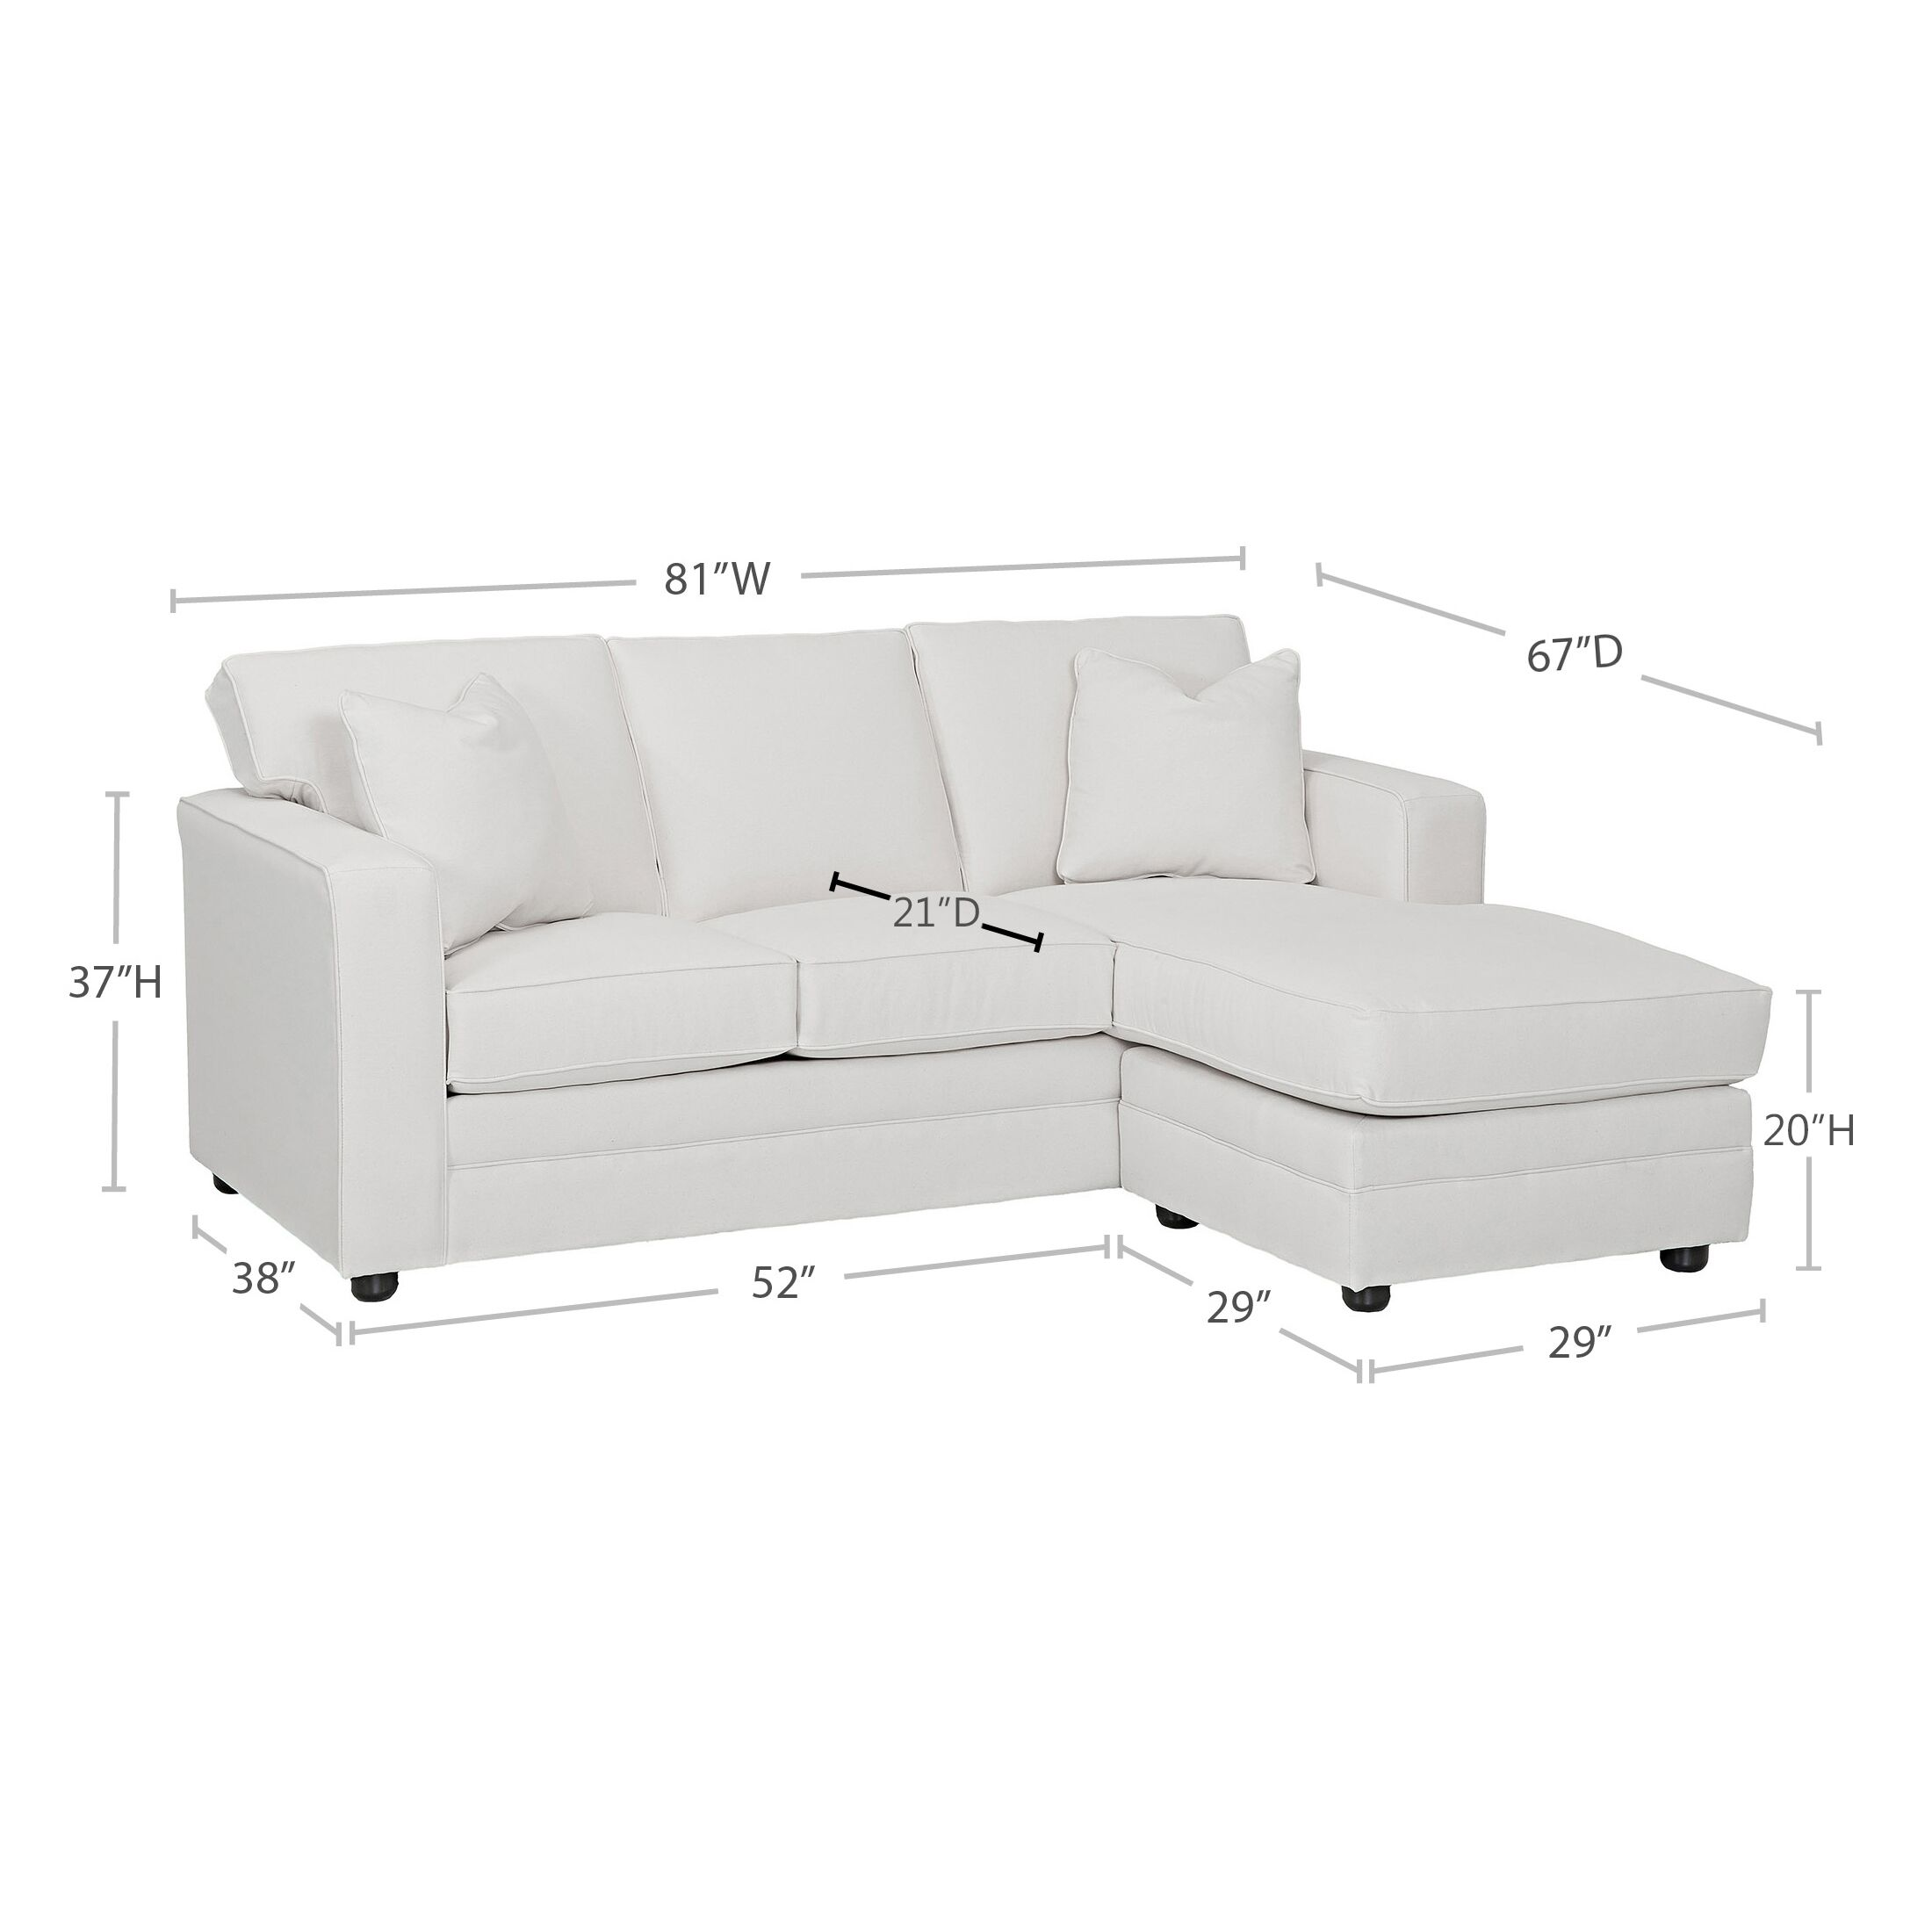 Andrew Reversible Sectional Body Fabric: Sunbrella® Canvas Canvas, Pillow Fabric: Sunbrella® Meridian Wisteria, Piping Fabric: Spinnsol Optic White